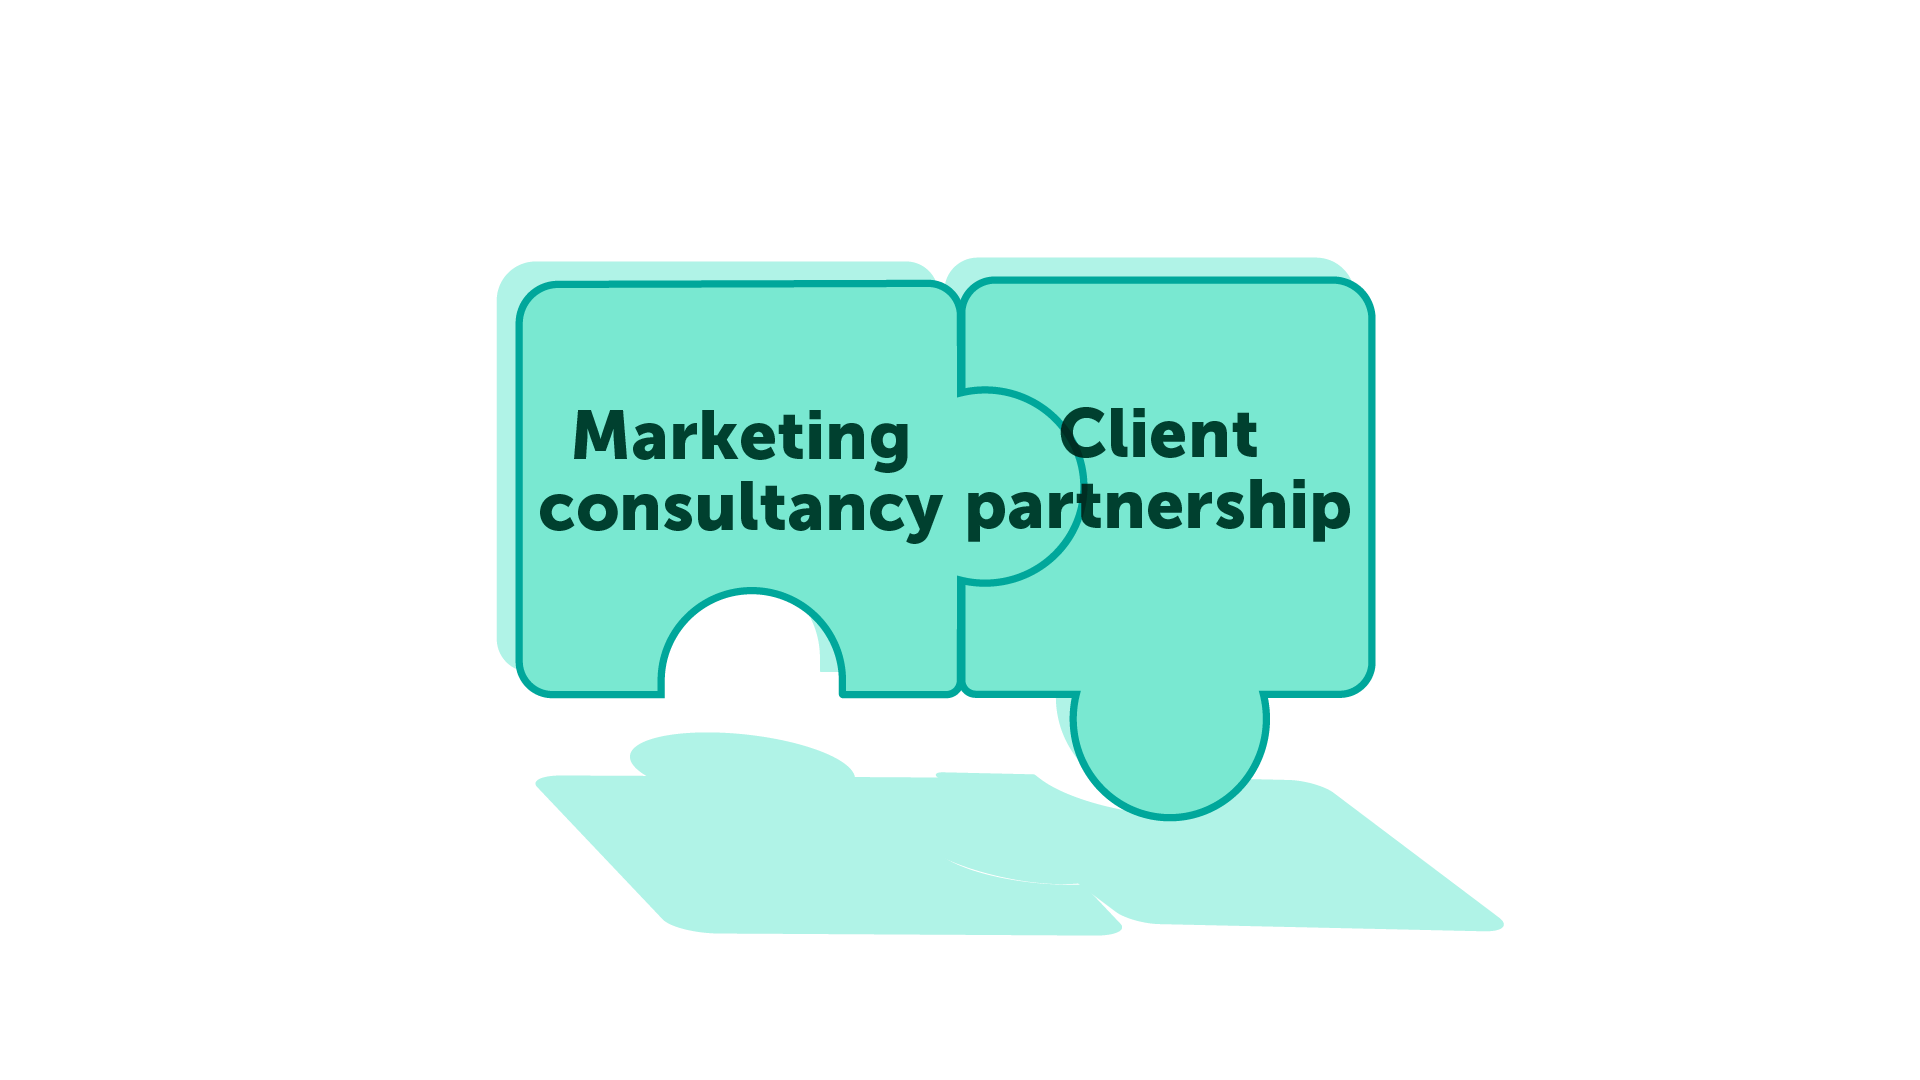 Image: Marketing consultancy and client partnership